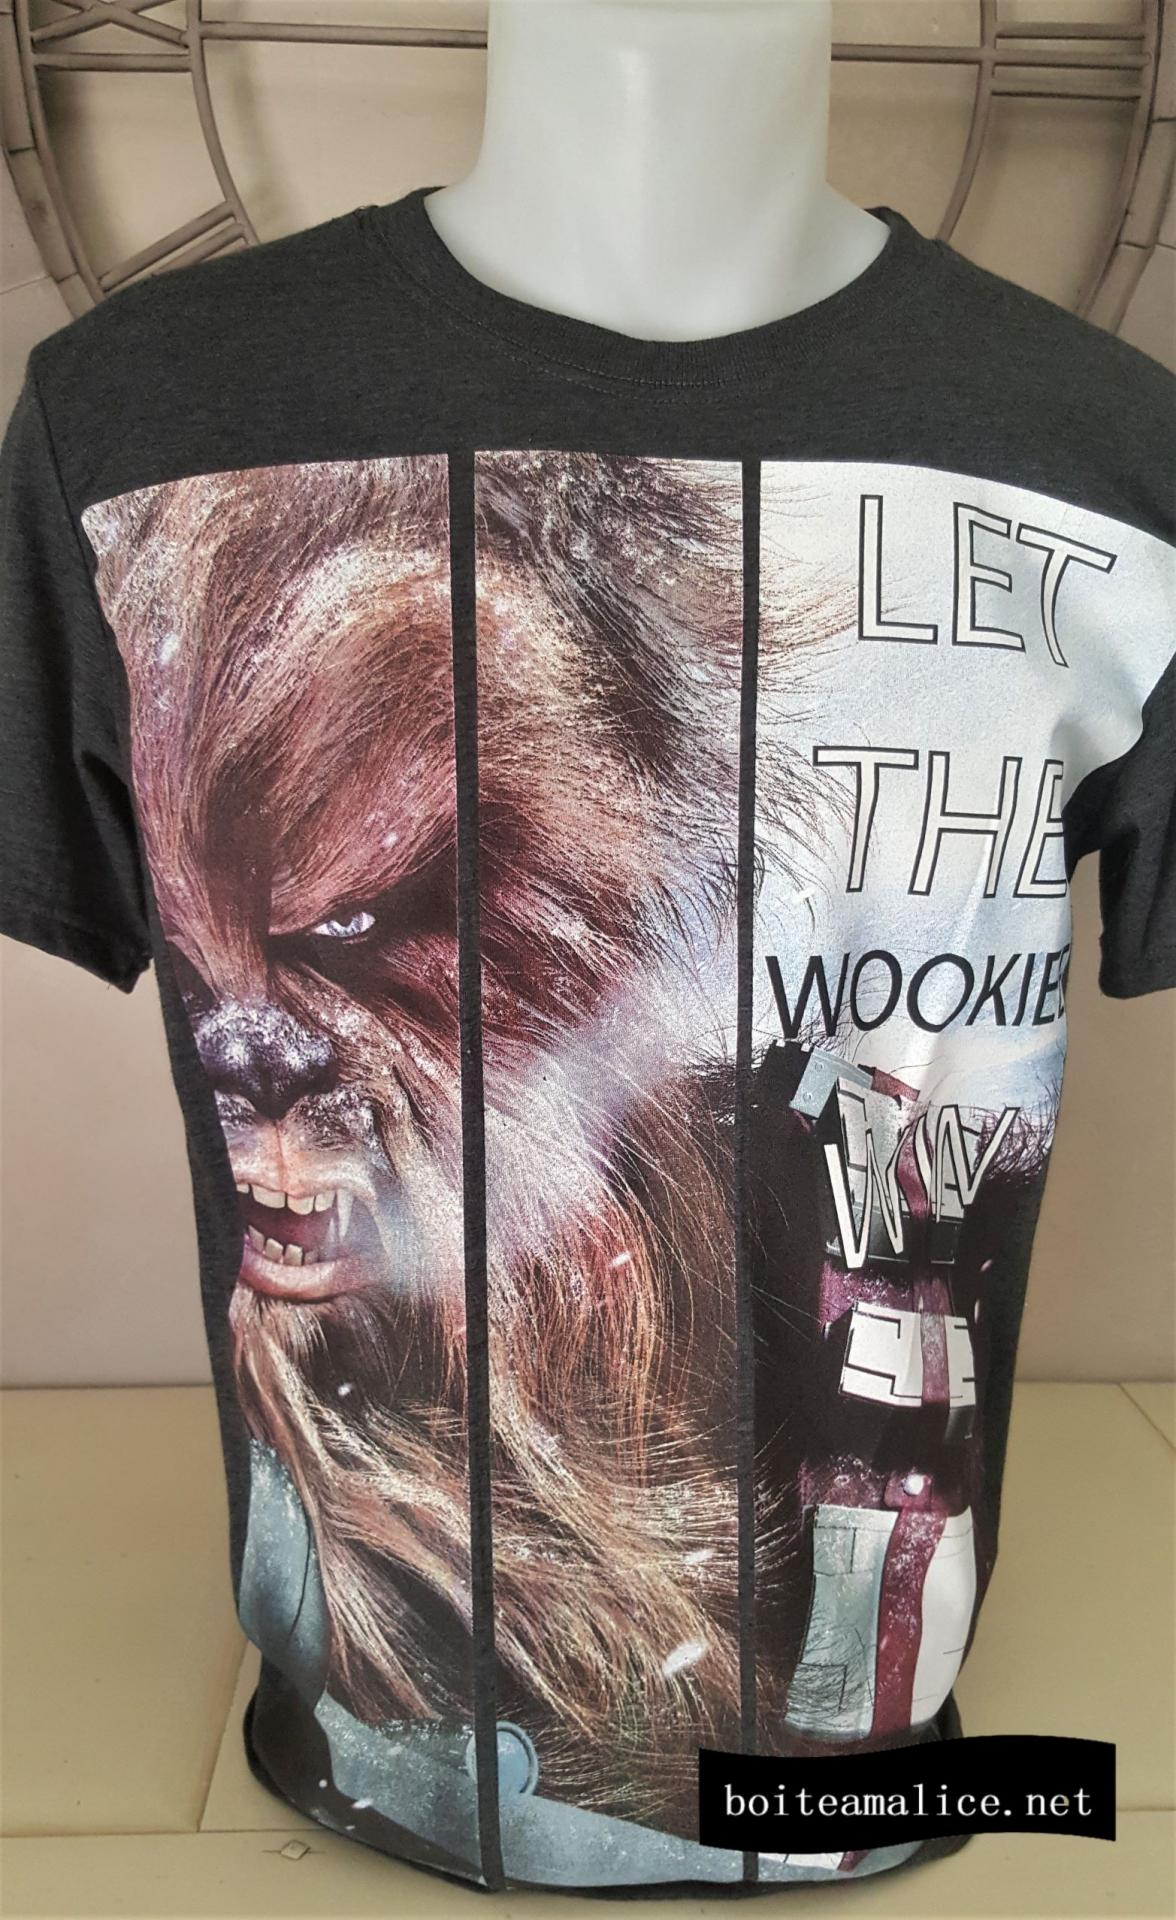 T shirt wookie chewbacca